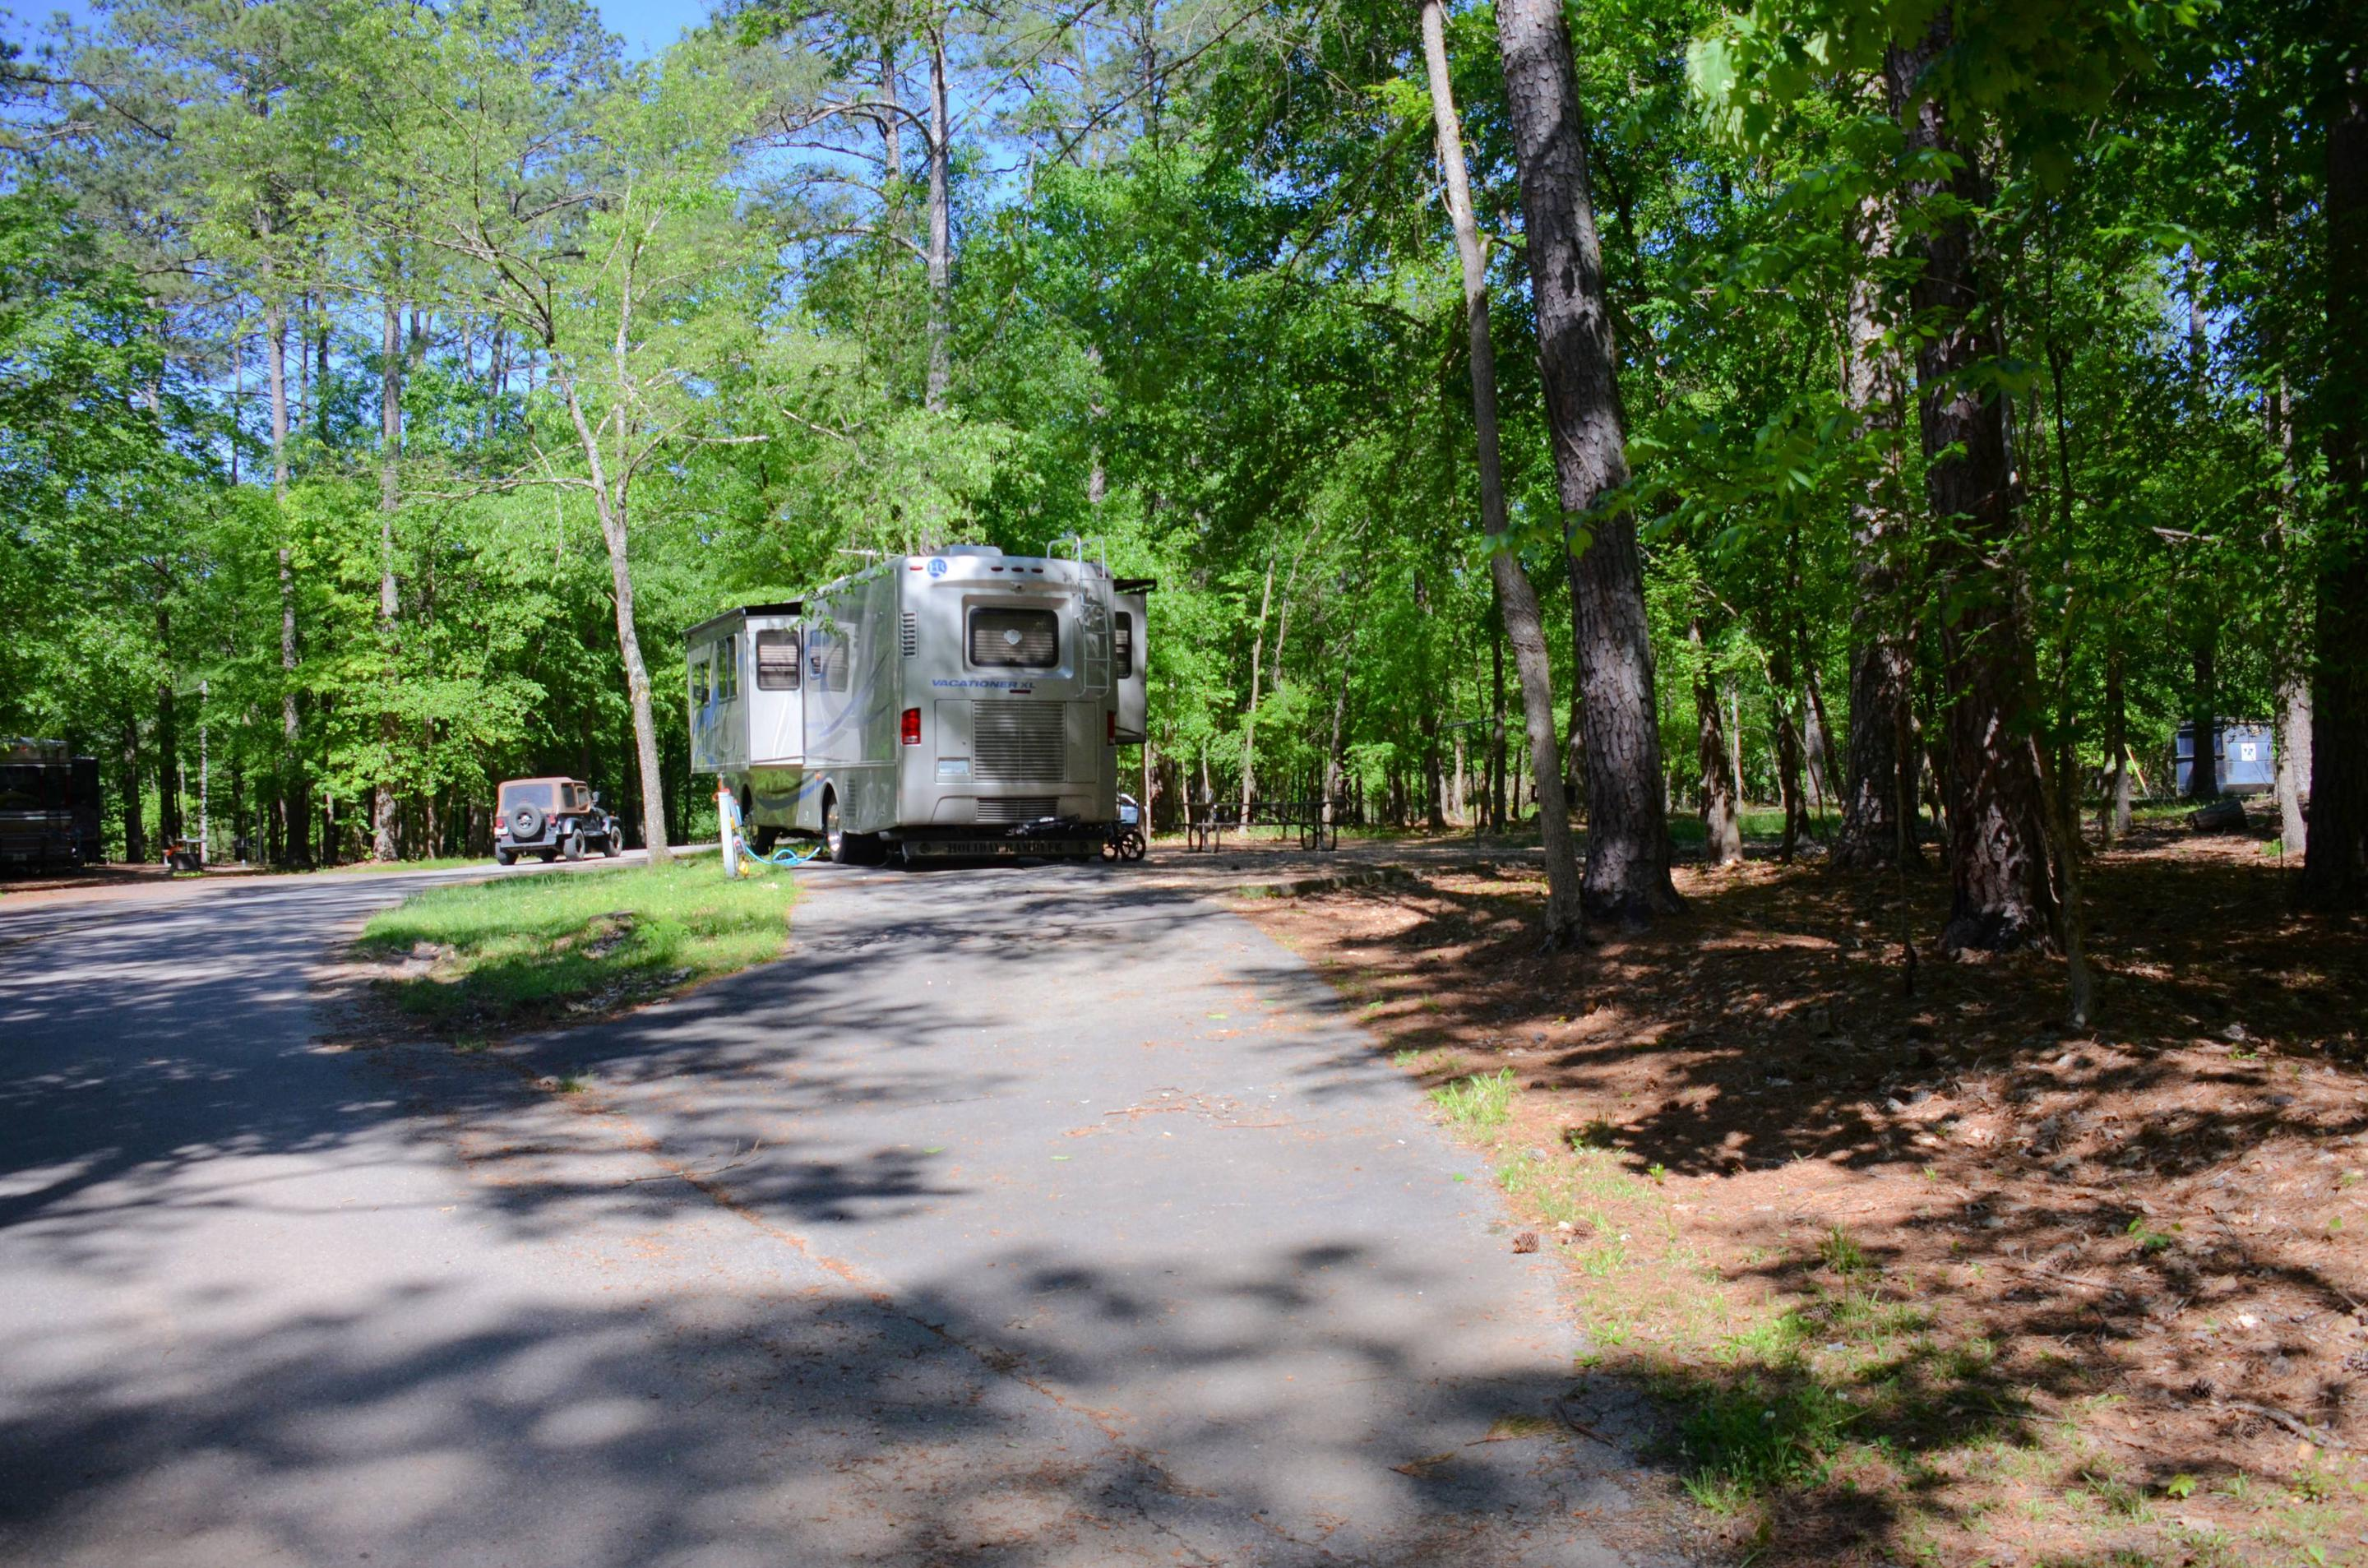 Pull-thru entrance, driveway slope, utilities-side clearance.McKinney Campground, campsite 74.